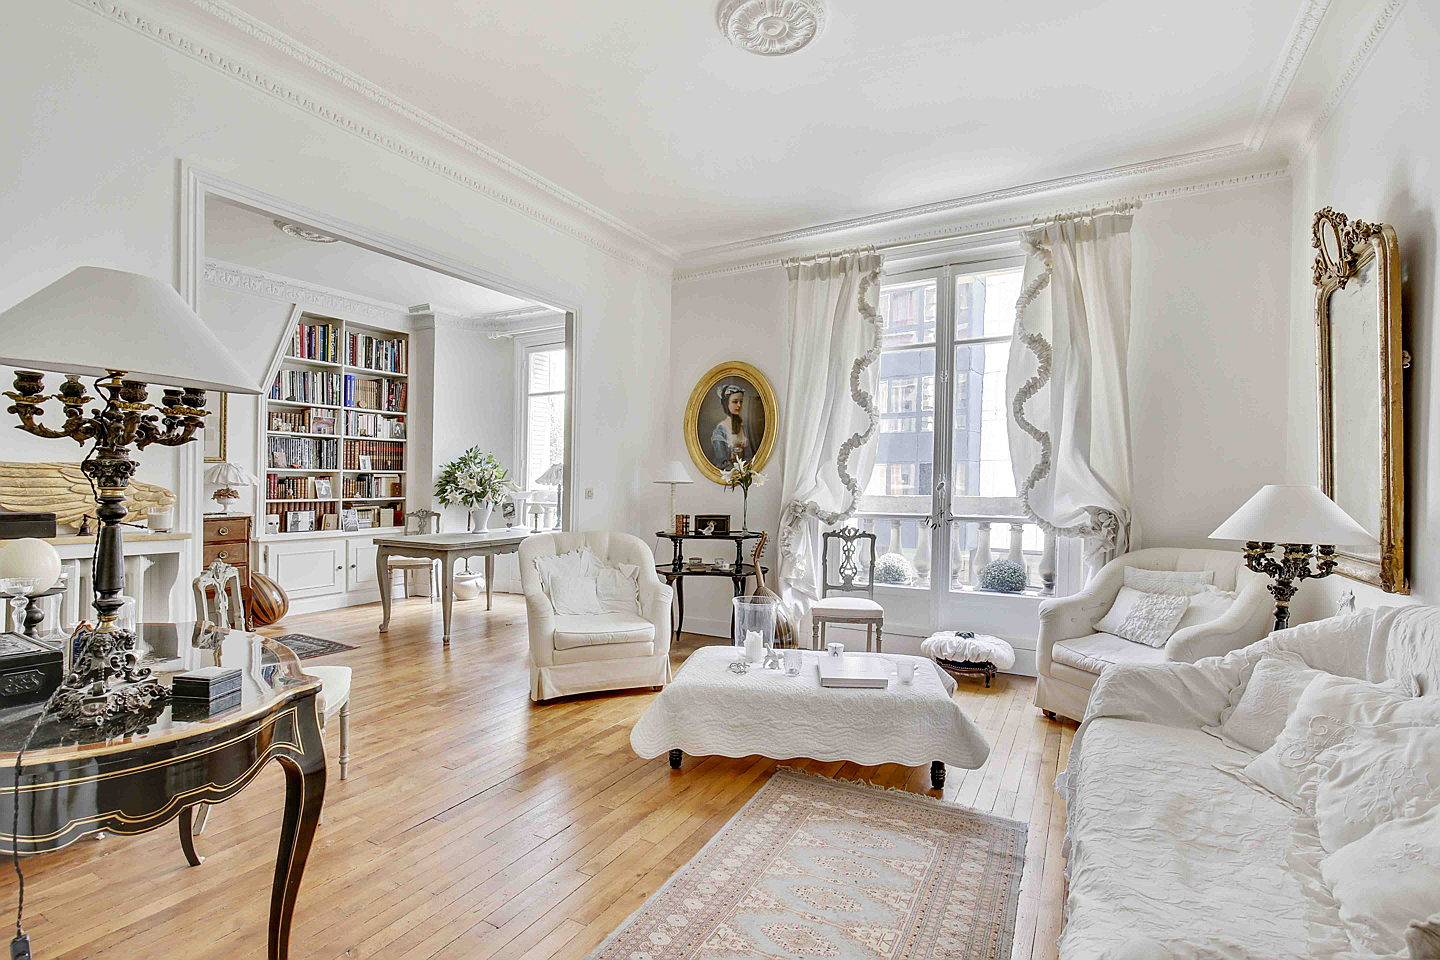 Sintra - This typically Parisian apartment is on sale for 1.3 million euros. The family property is located on the second floor of a building designed in the Haussmann style. The approx. 101 square metre interior consists of two bedrooms and a bathroom.